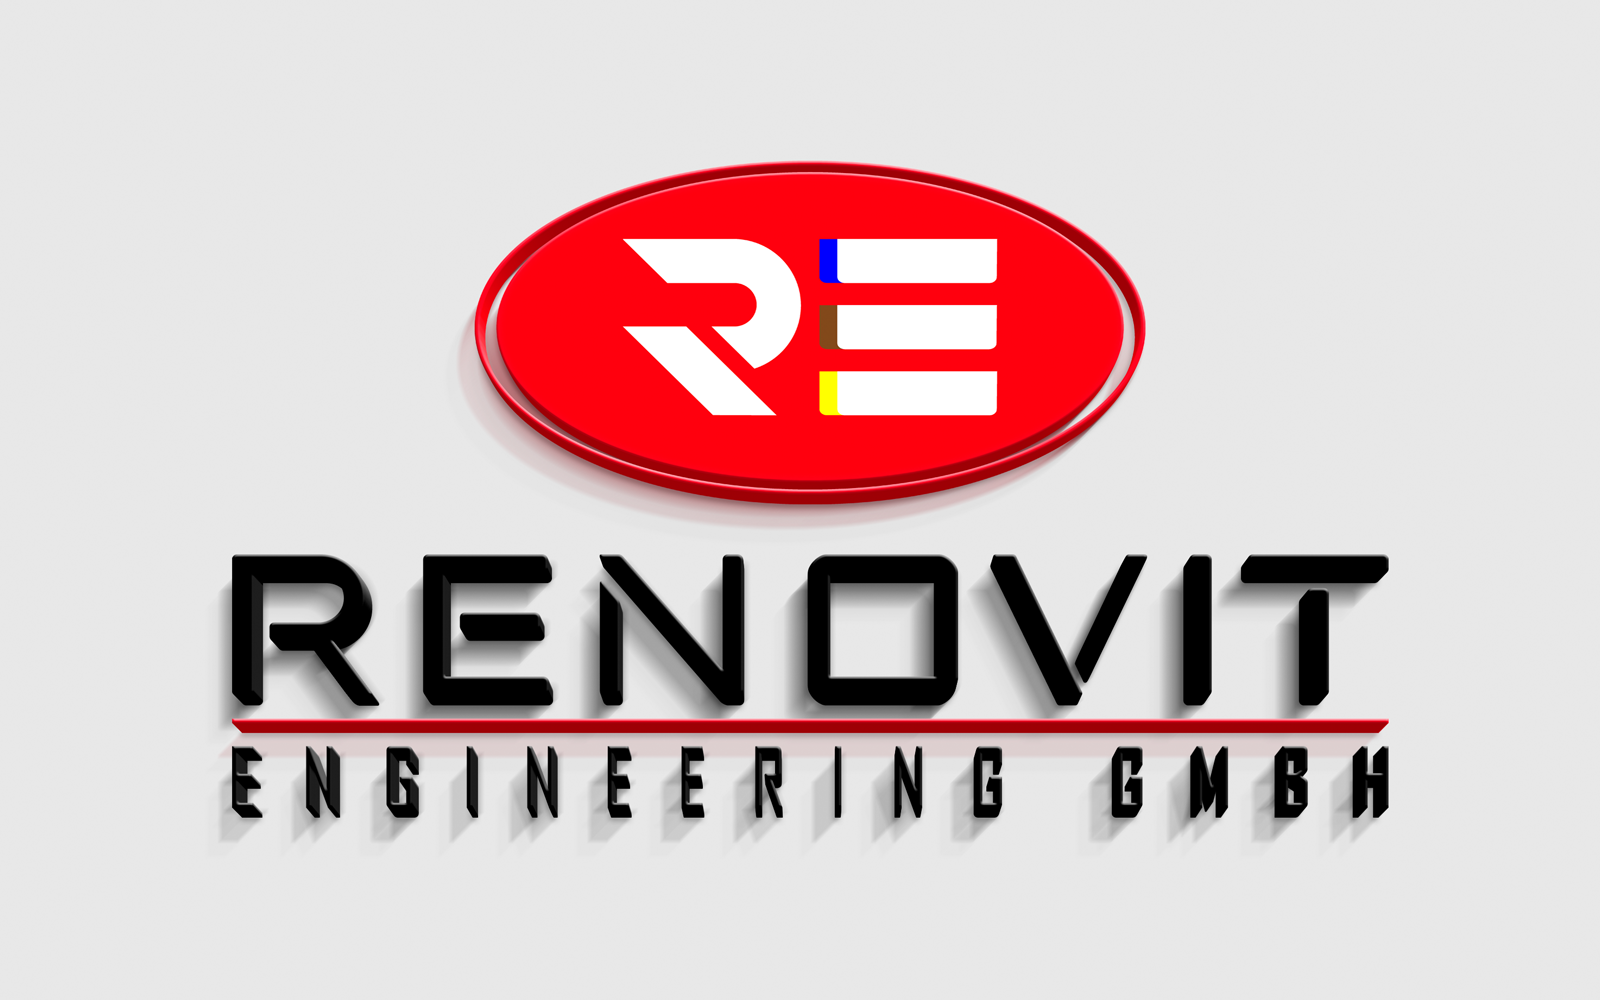 Renovit Engineering GmbH Logo Design